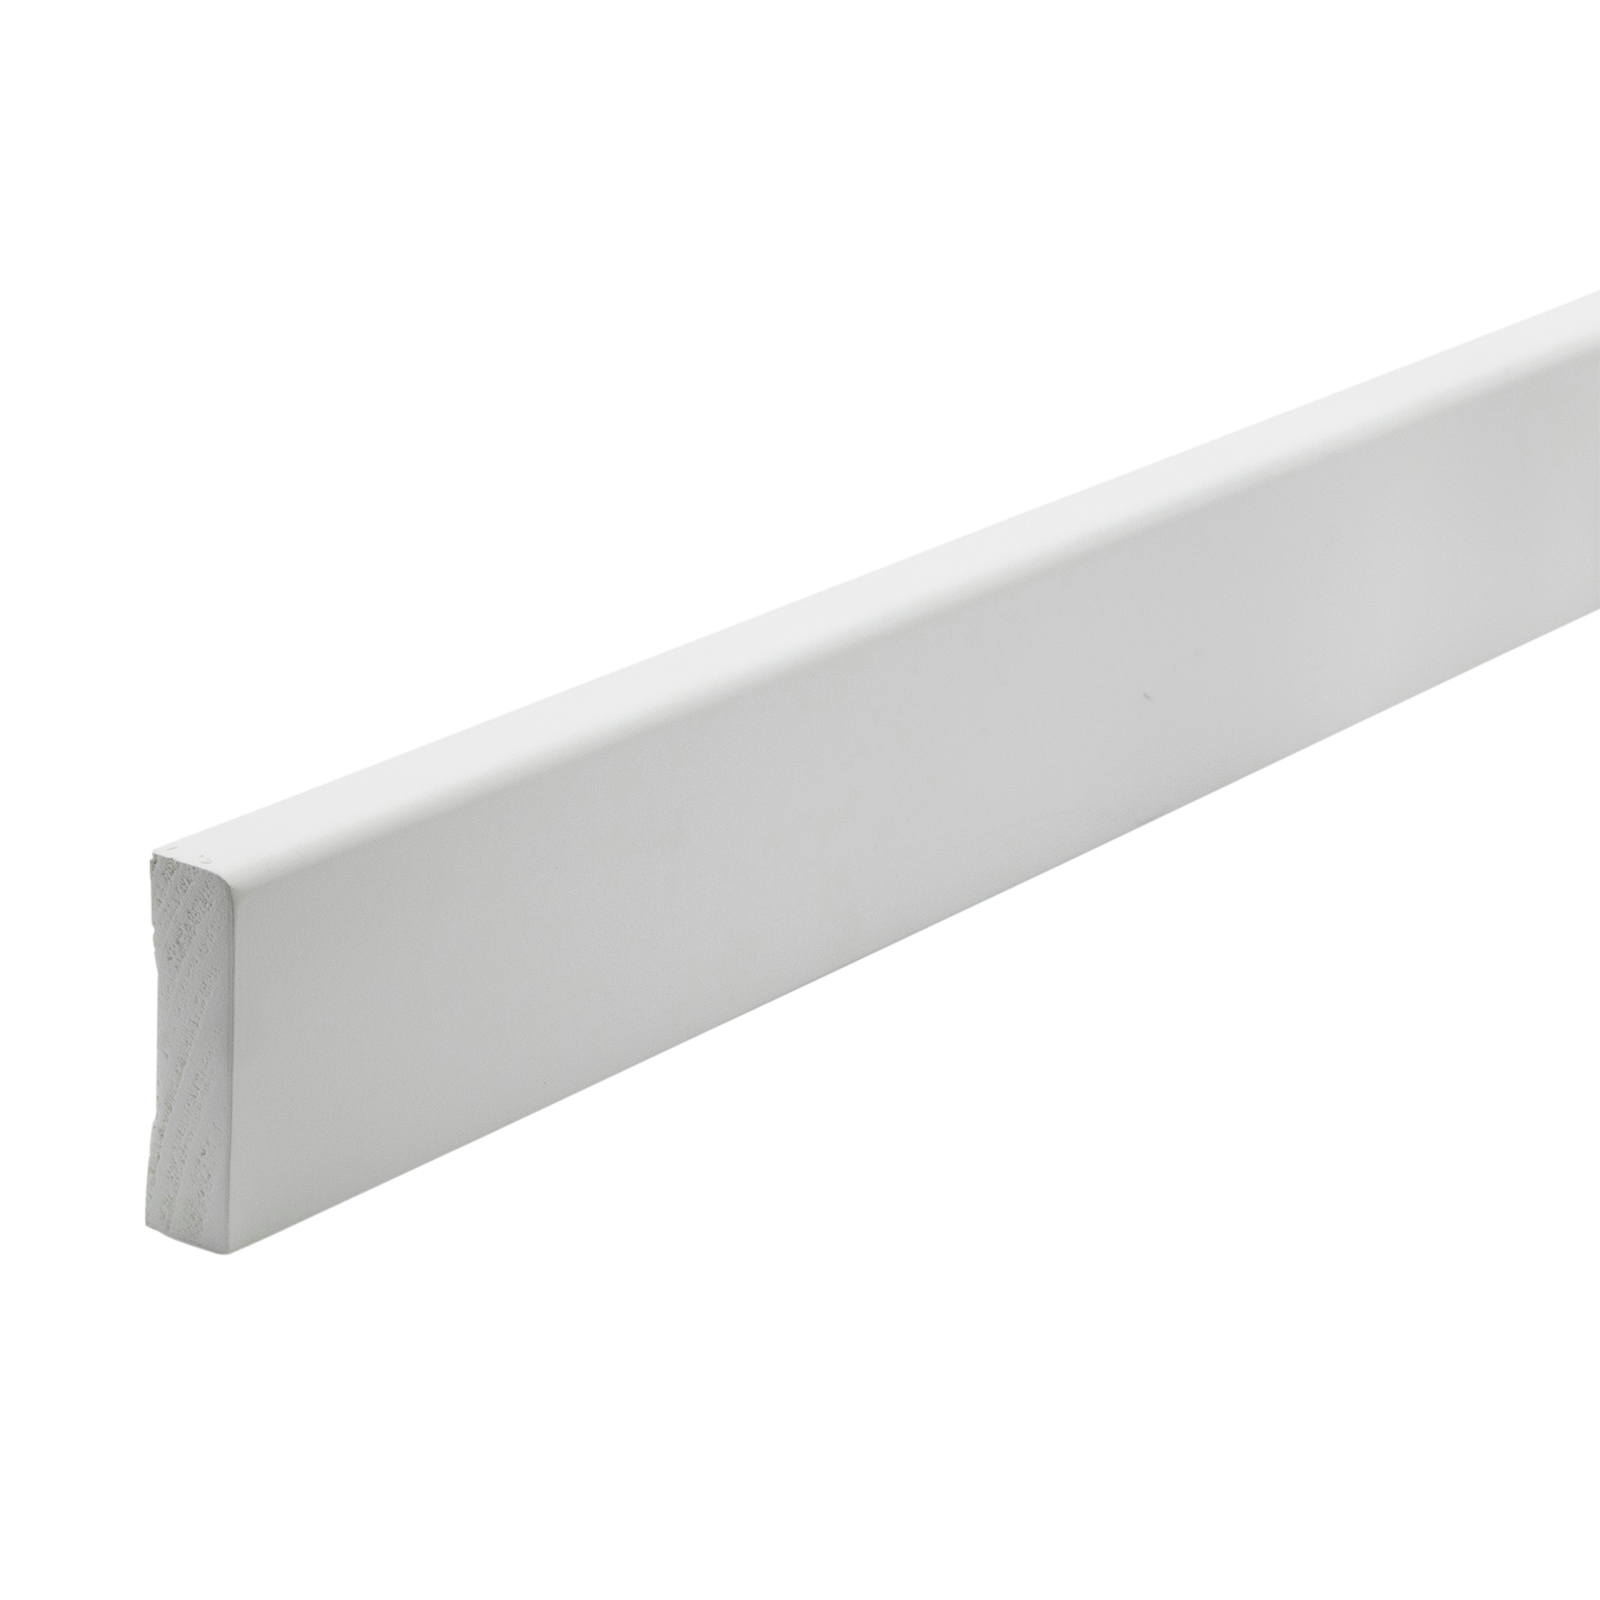 Woodhouse EdgeLine 66 x 18mm 5.4m Pencil Round White Primed Finger Jointed Pine Moulding